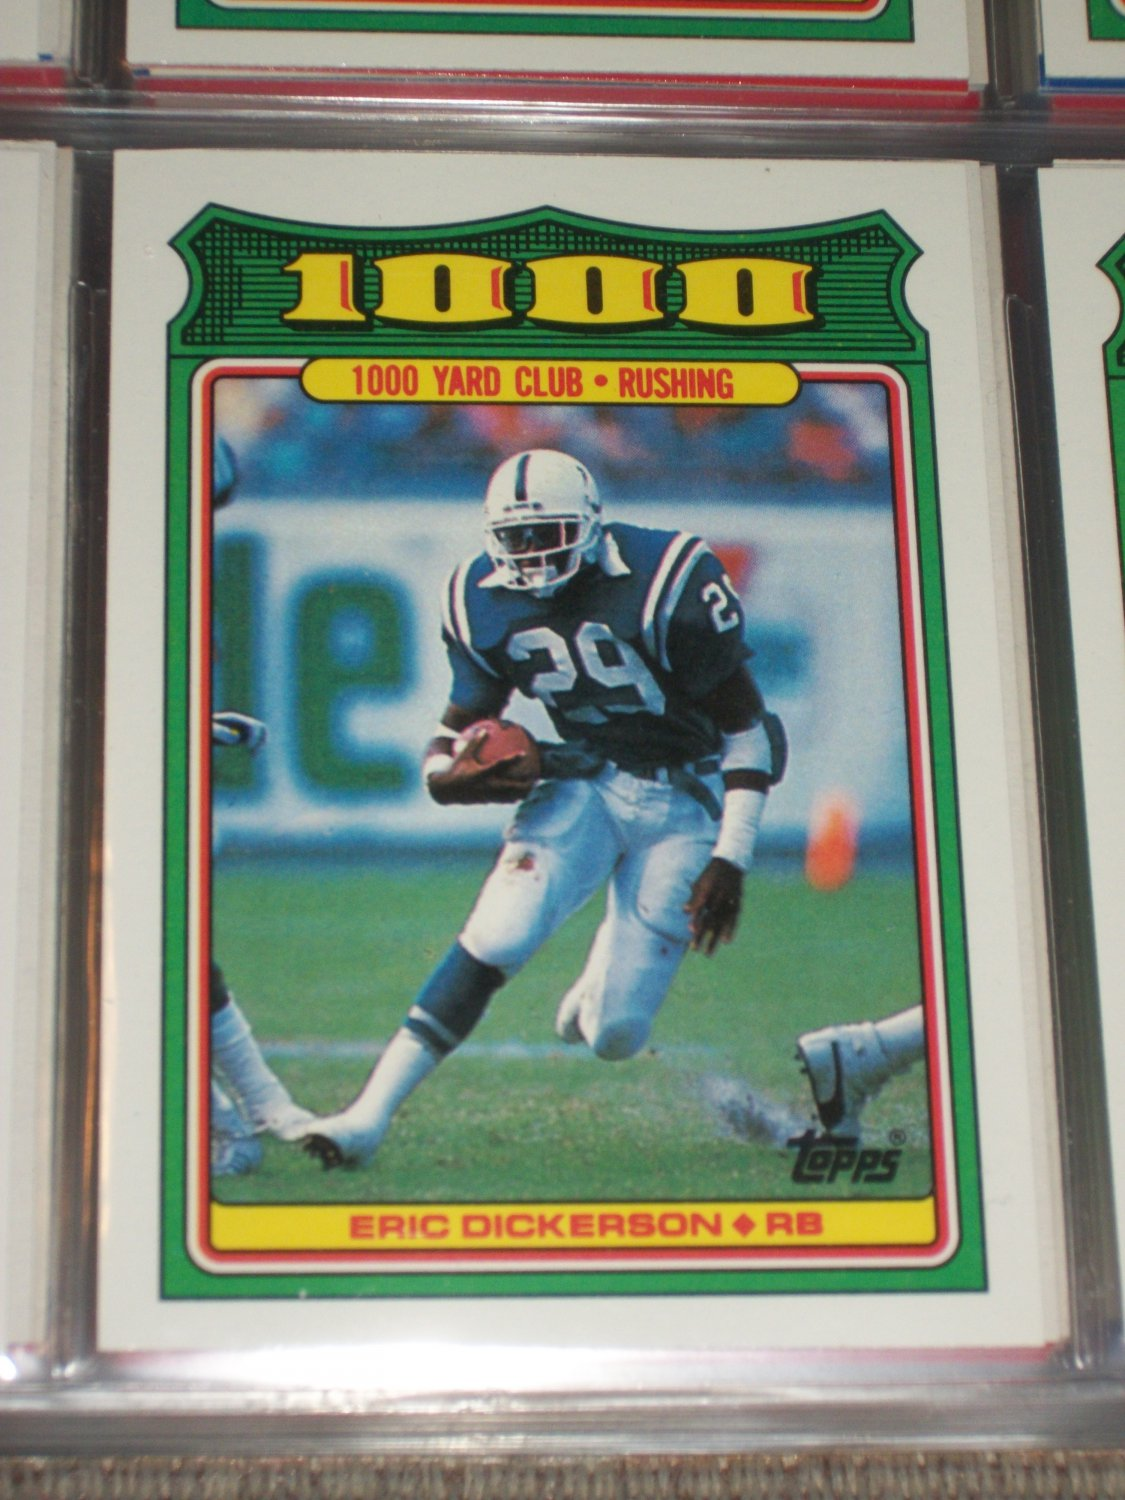 Eric Dickerson 1988 Topps Rare Quot 1 000 Yard Club Quot Football Card